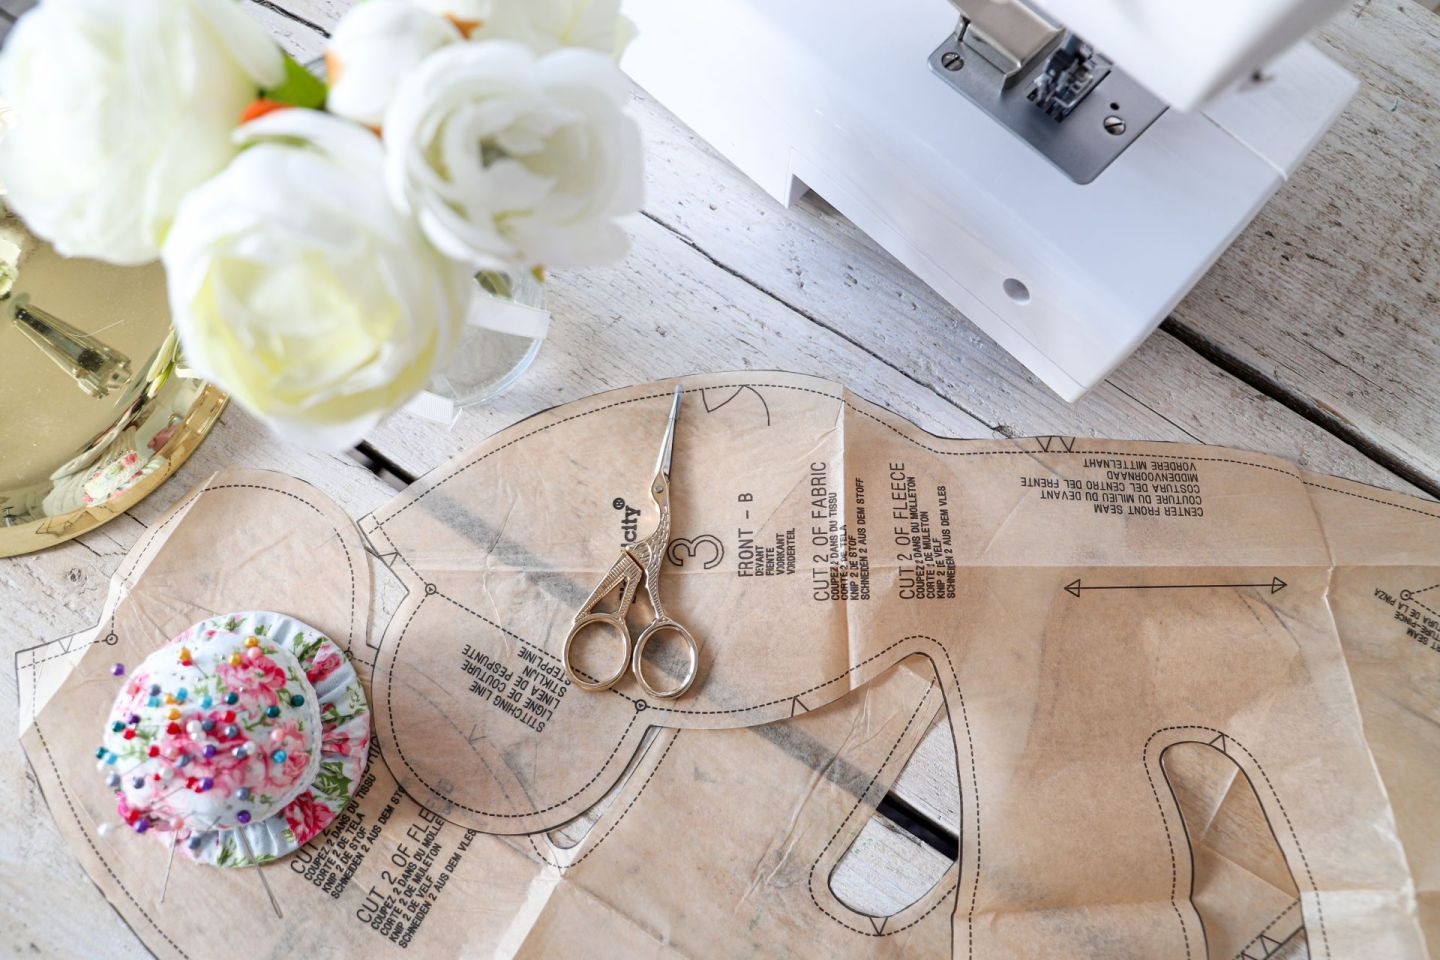 Top tips for buying a sewing machine